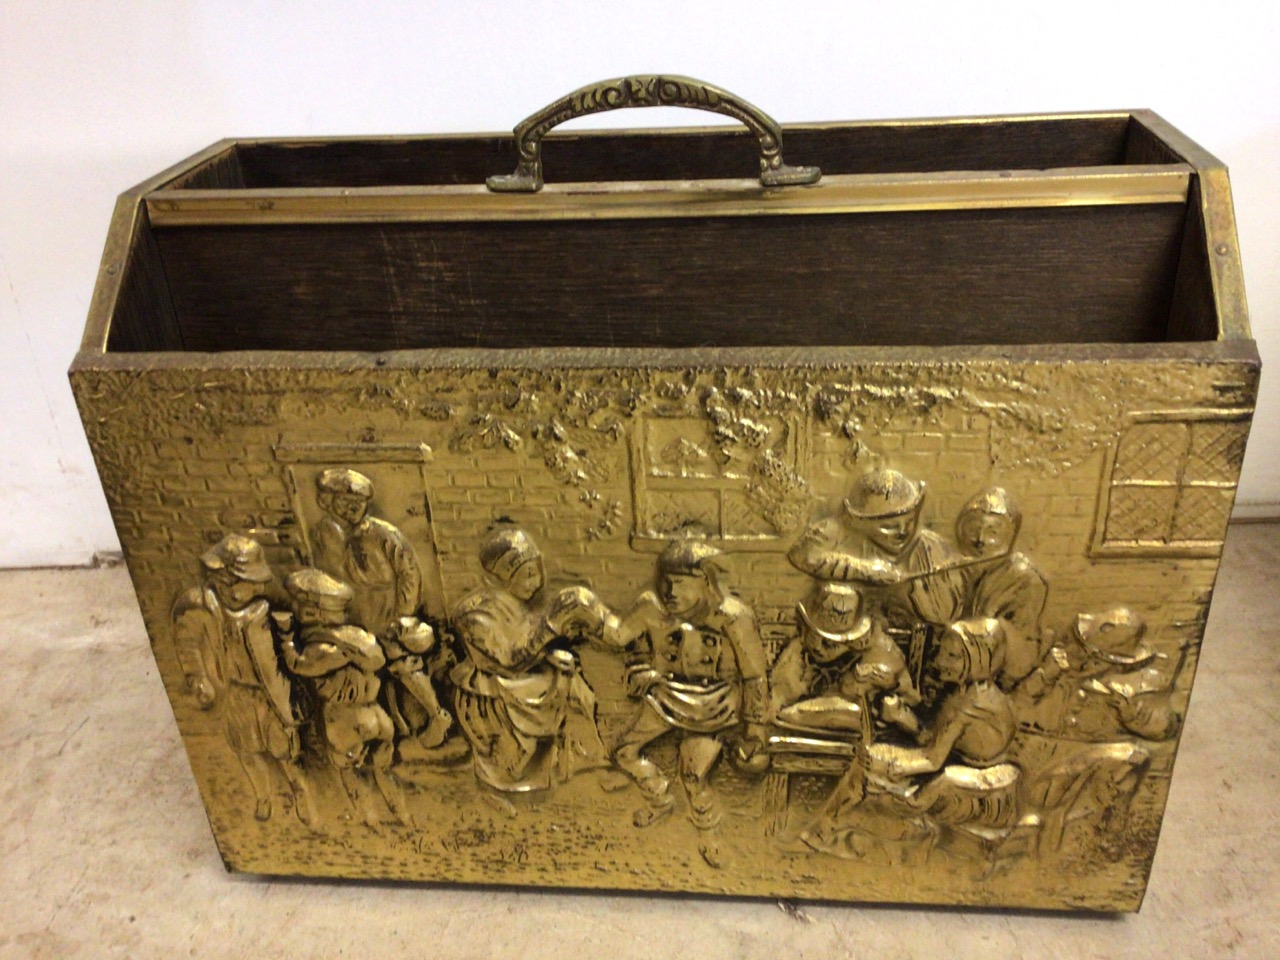 A brass coal box also with a magazine rack with images of pre lockdown action packed pub scenes. - Image 3 of 4